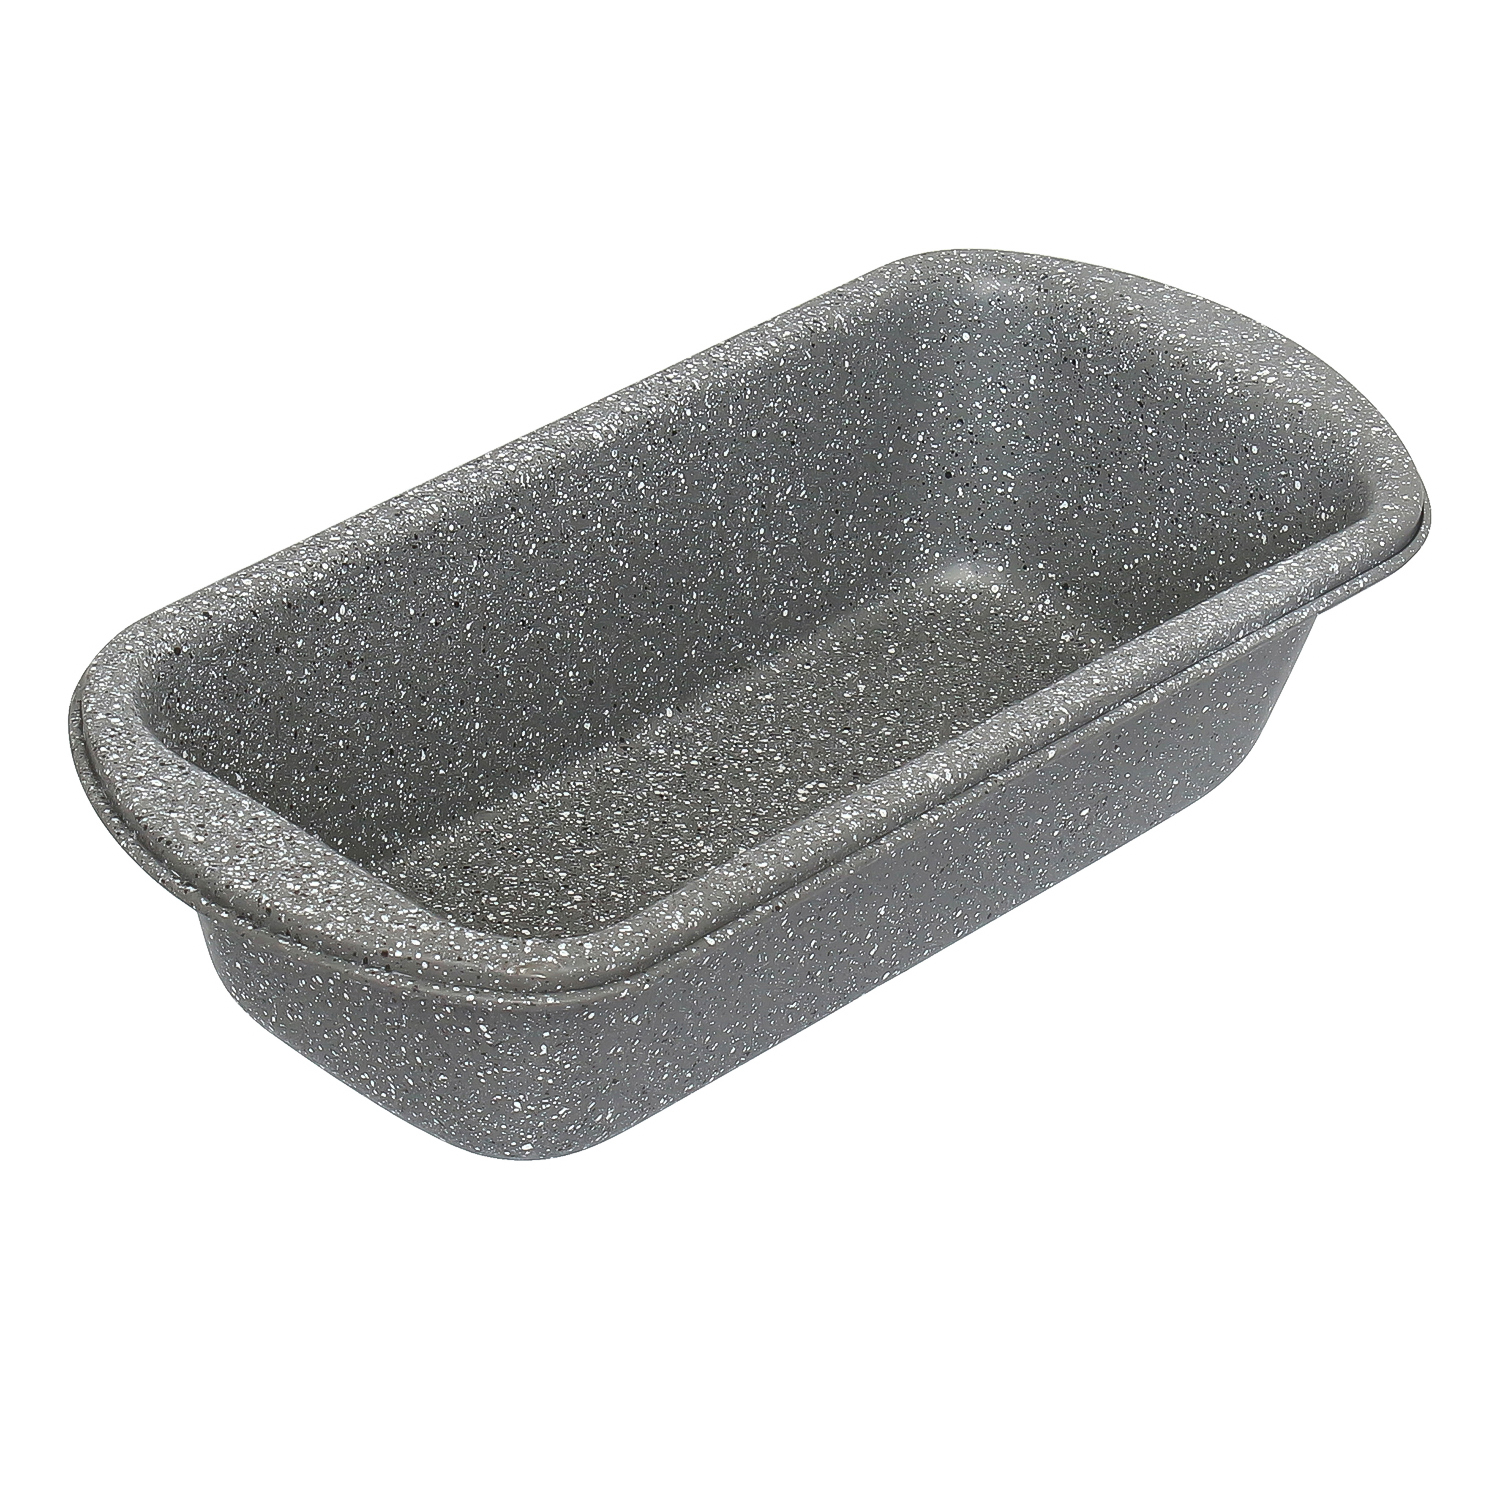 Loaf Pan - Small